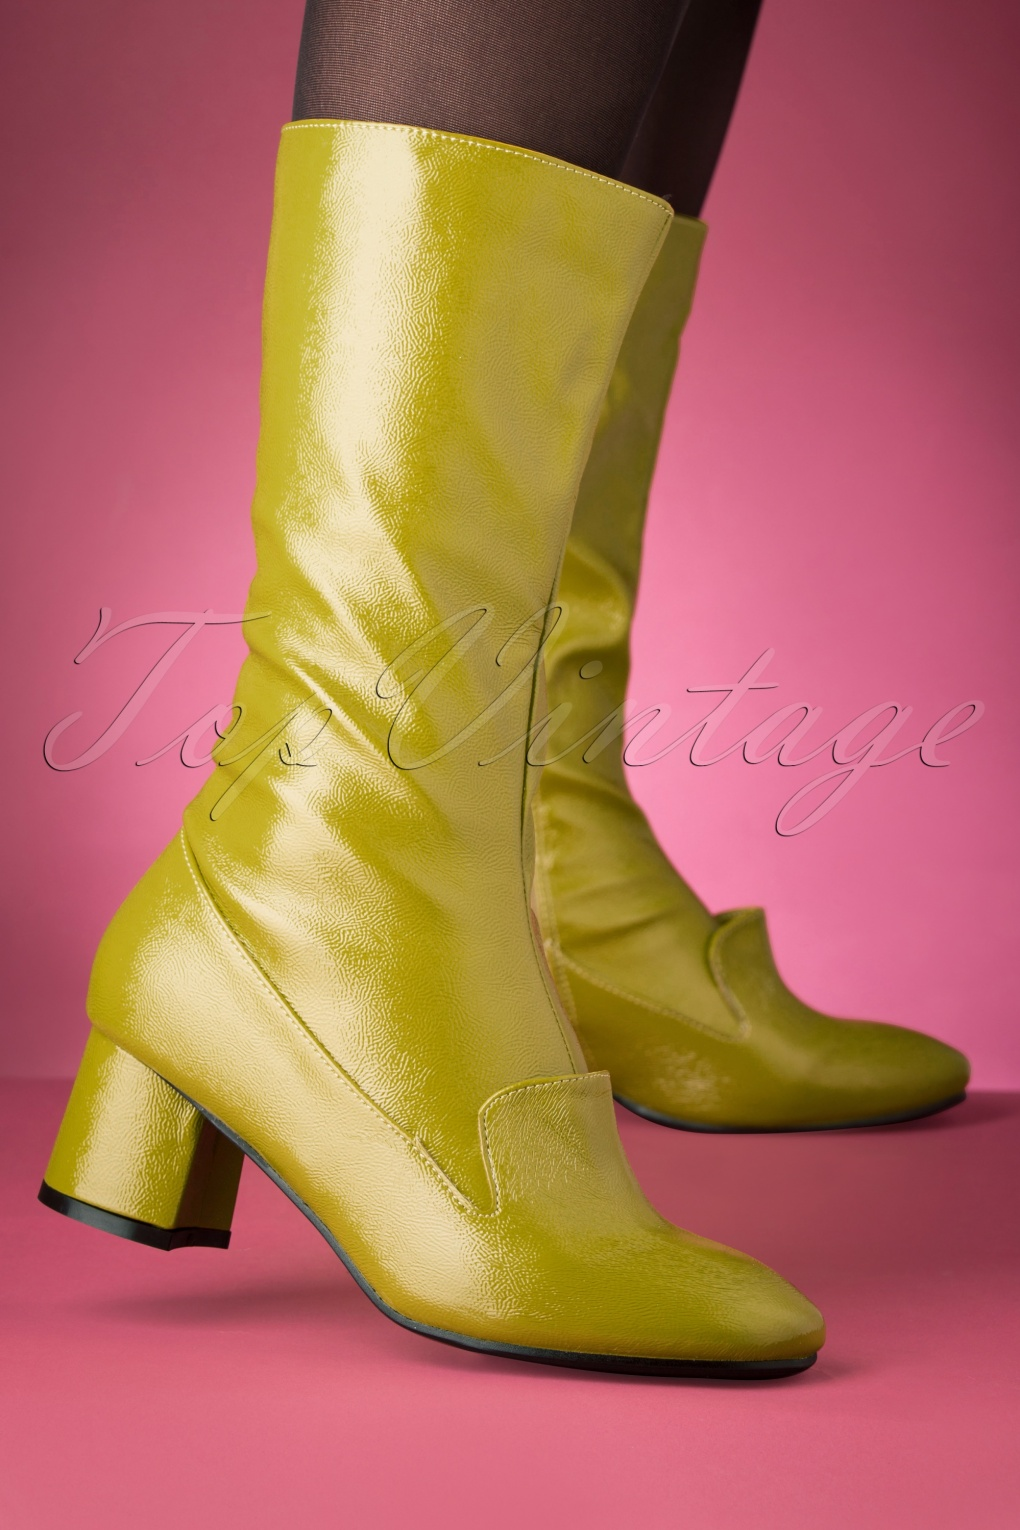 1960s Style Dresses, Clothing, Shoes UK 60s The Modernist Patent Boots in Pistachio £74.75 AT vintagedancer.com